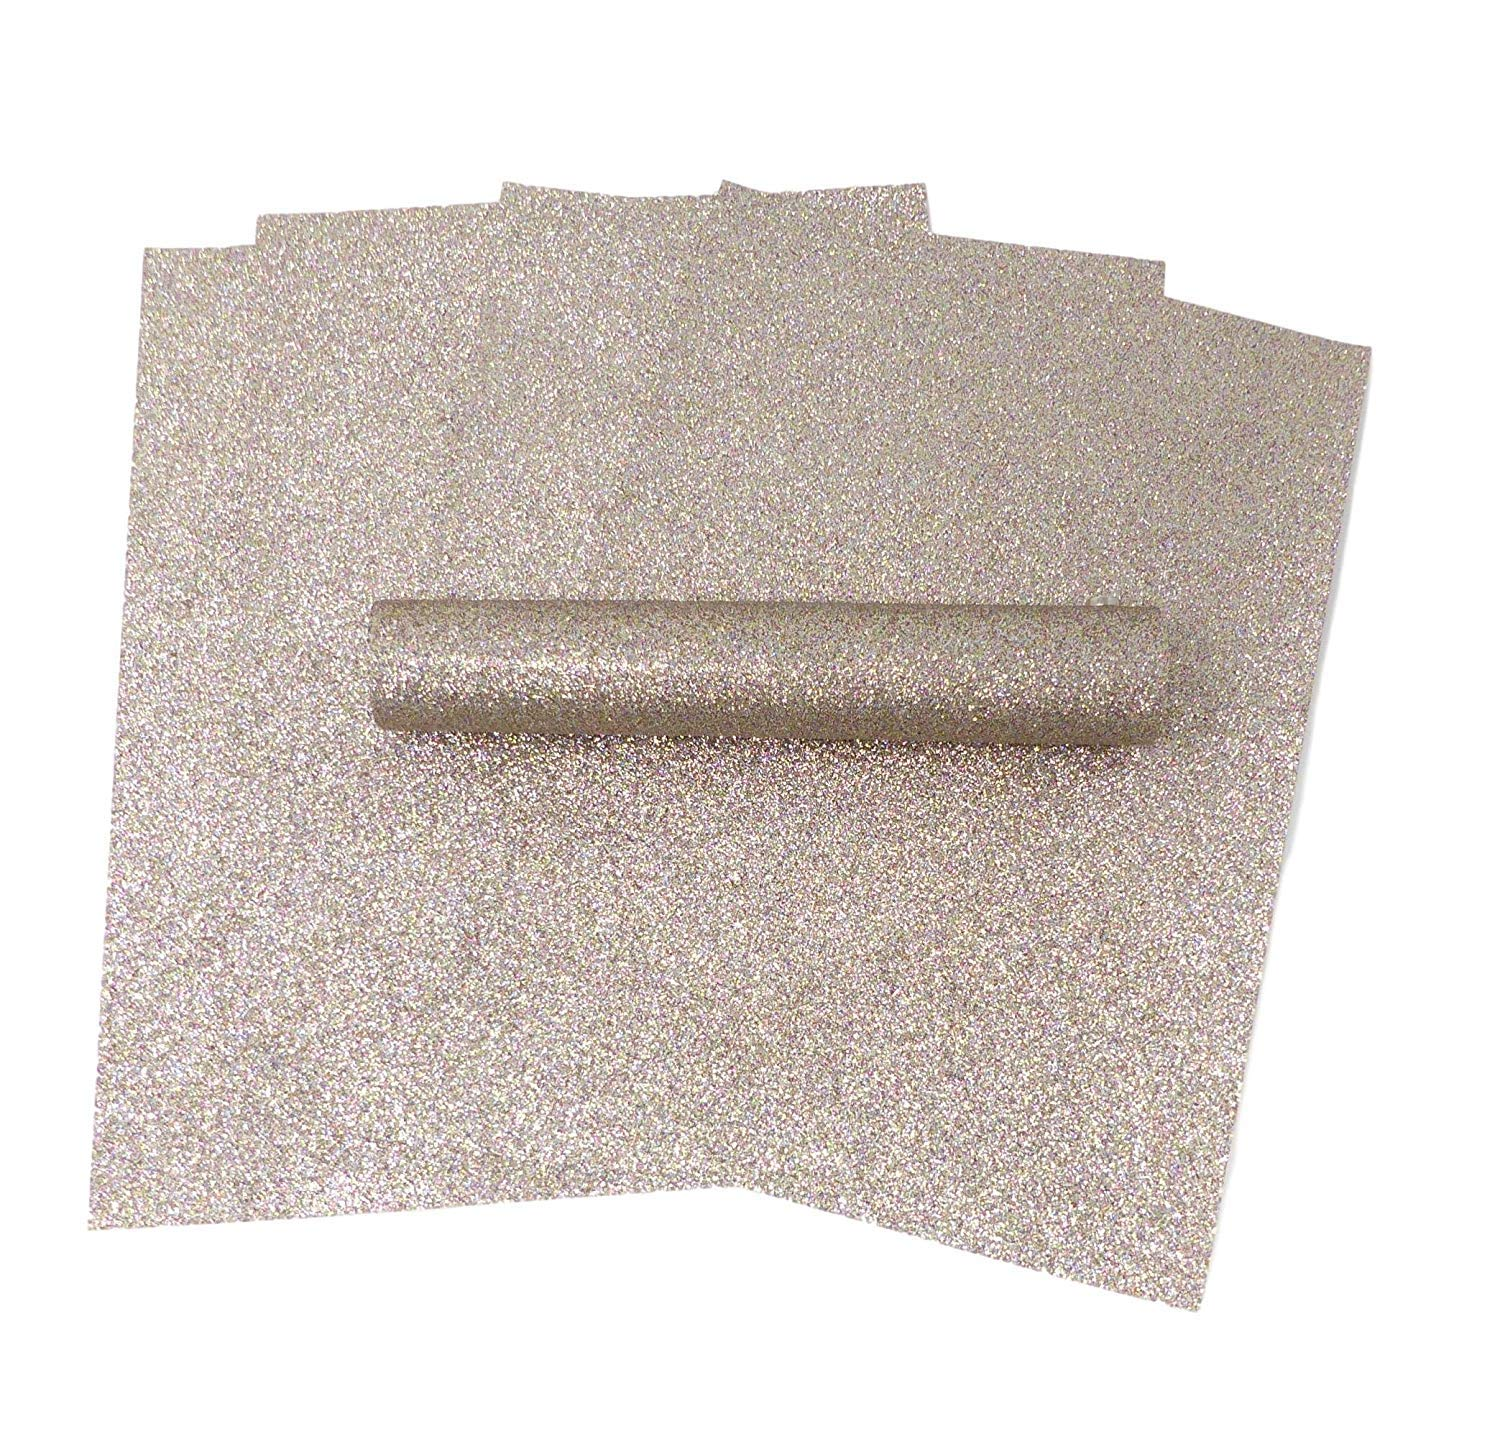 10 Sheets A4 Glitter Paper Light Gold Iridescent Colour Mix Sparkly Soft Touch Non Shed 100gsm